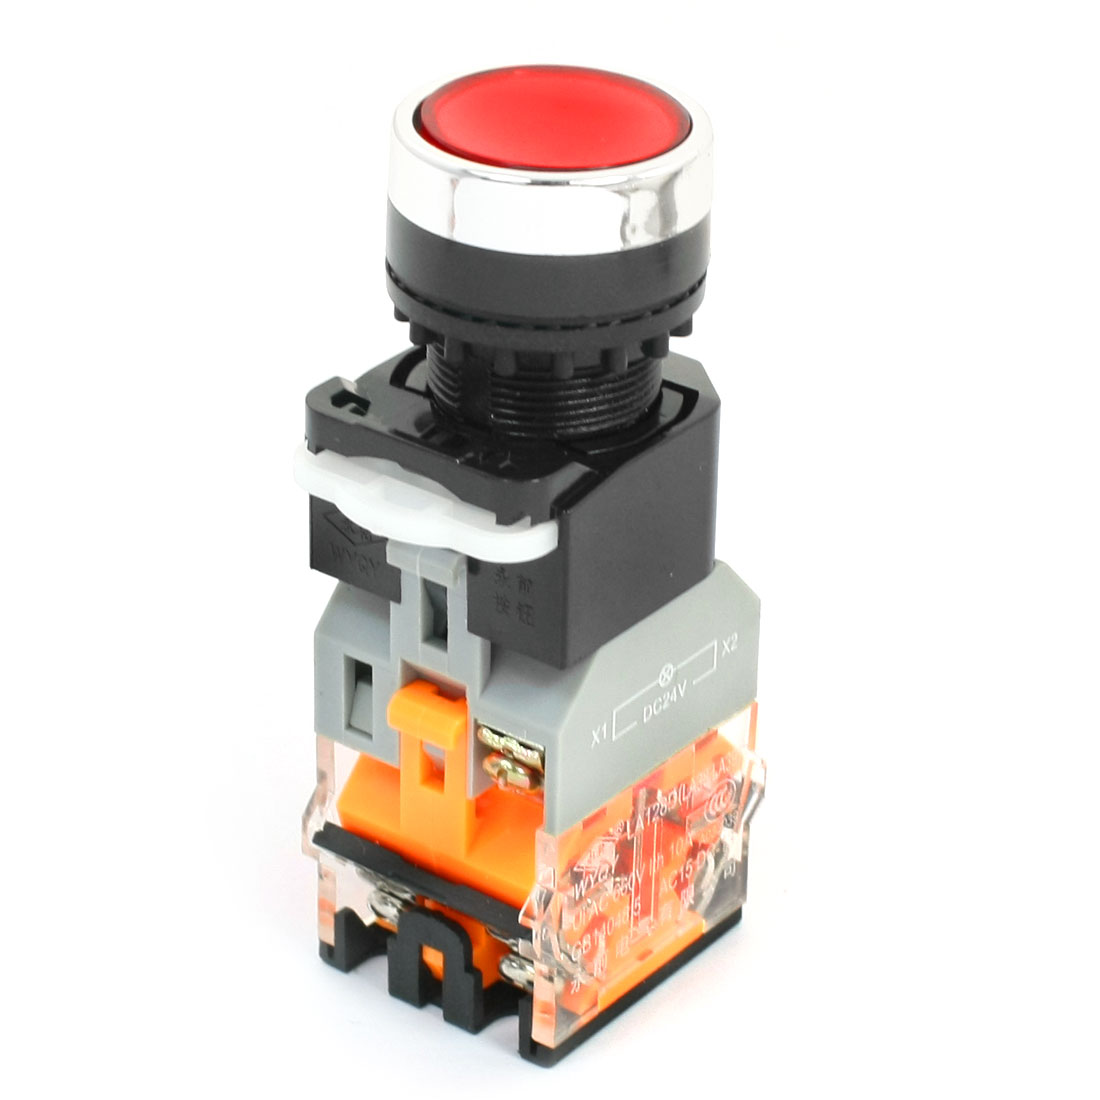 DPST Latching Round Head Operator Red Indicator Light Push Button Switch 660V 10A